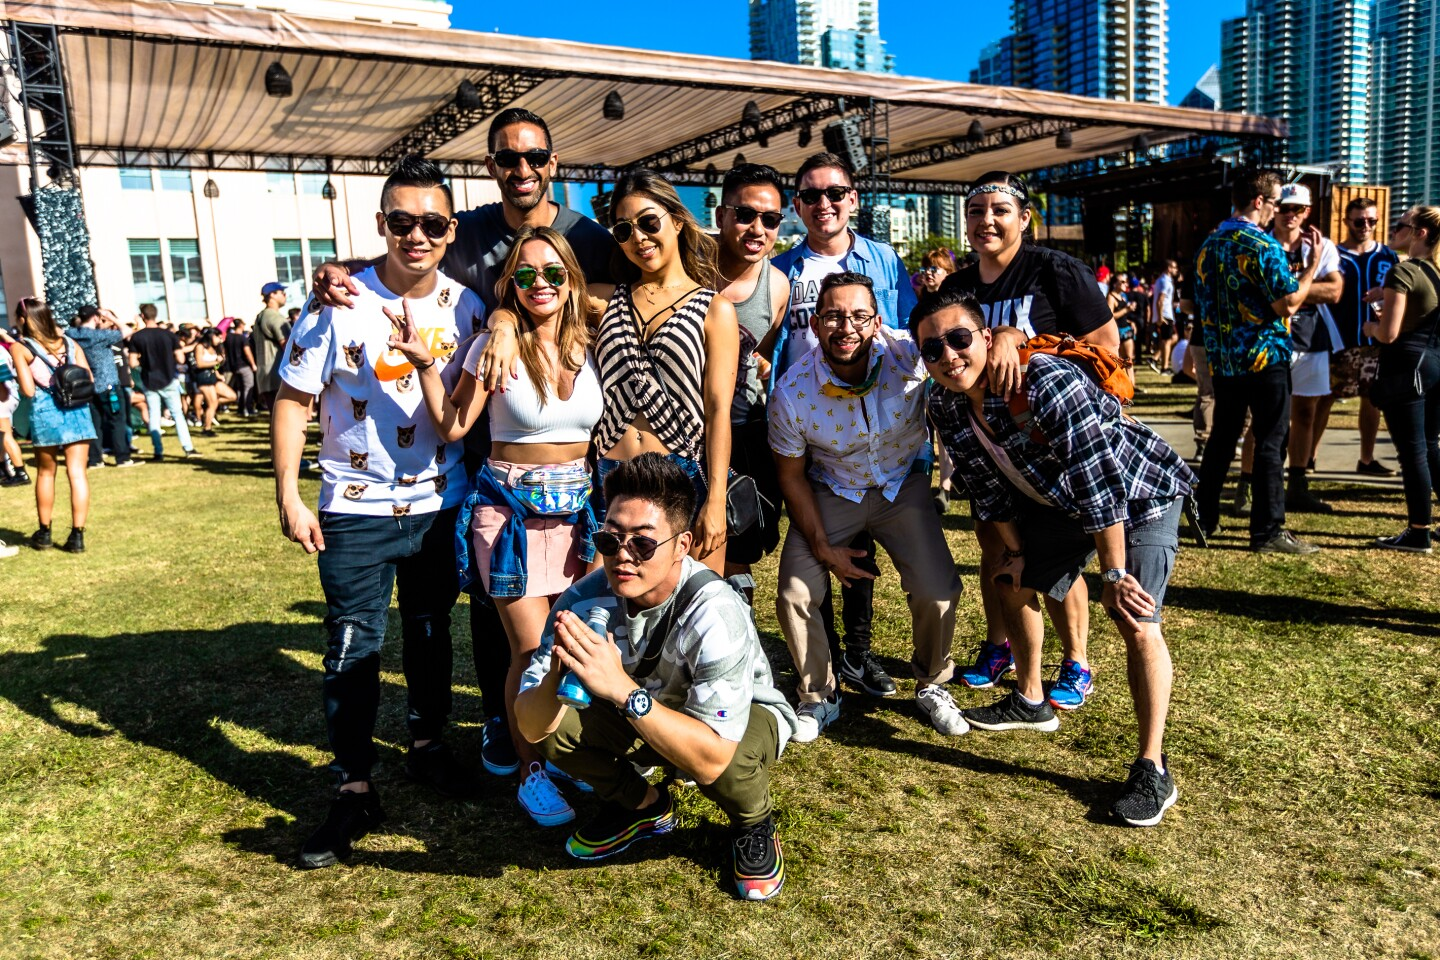 Day 2 of CRSSD Fest